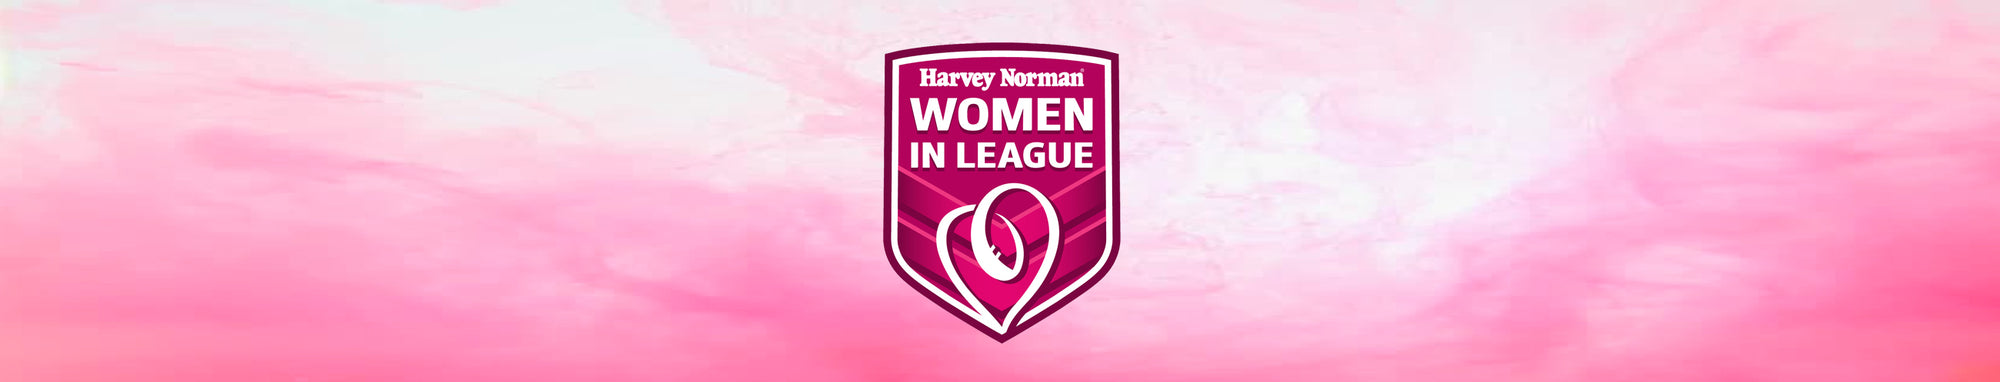 Women In League